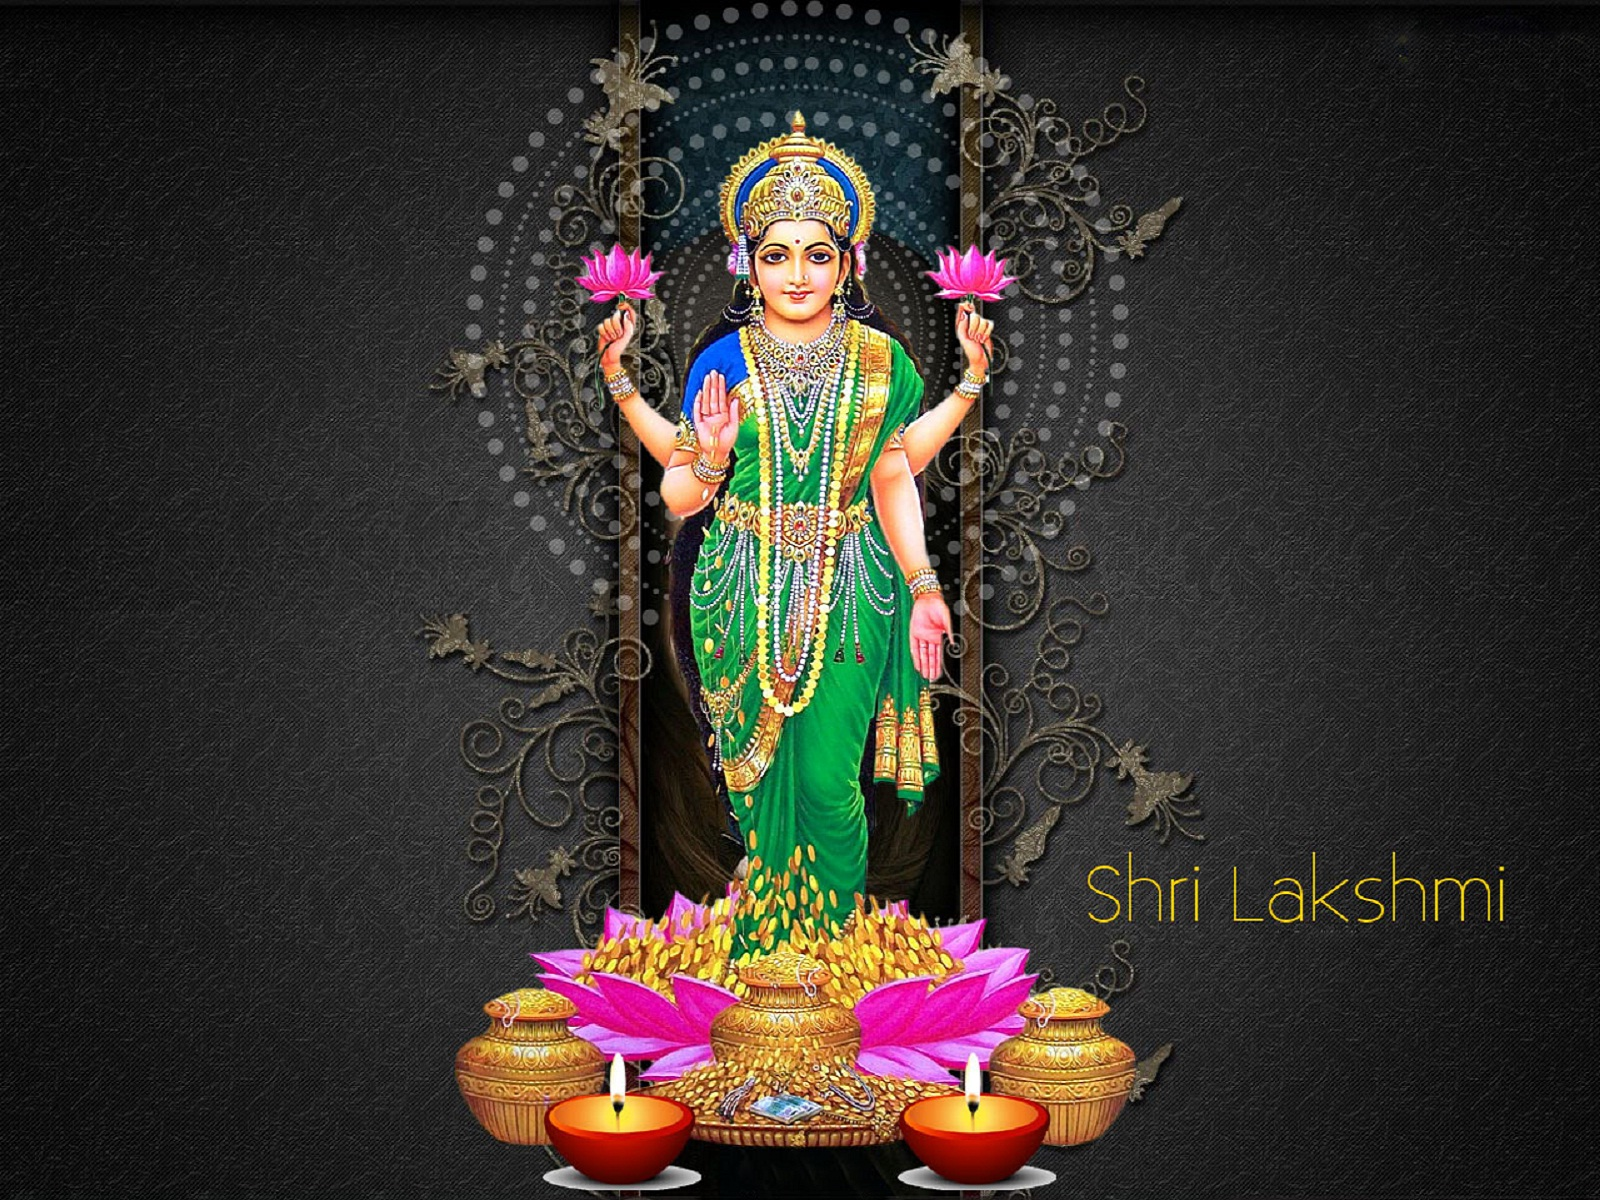 Download Free HD Wallpapers of Maa laxmi(lakshmi) Devi | Maa